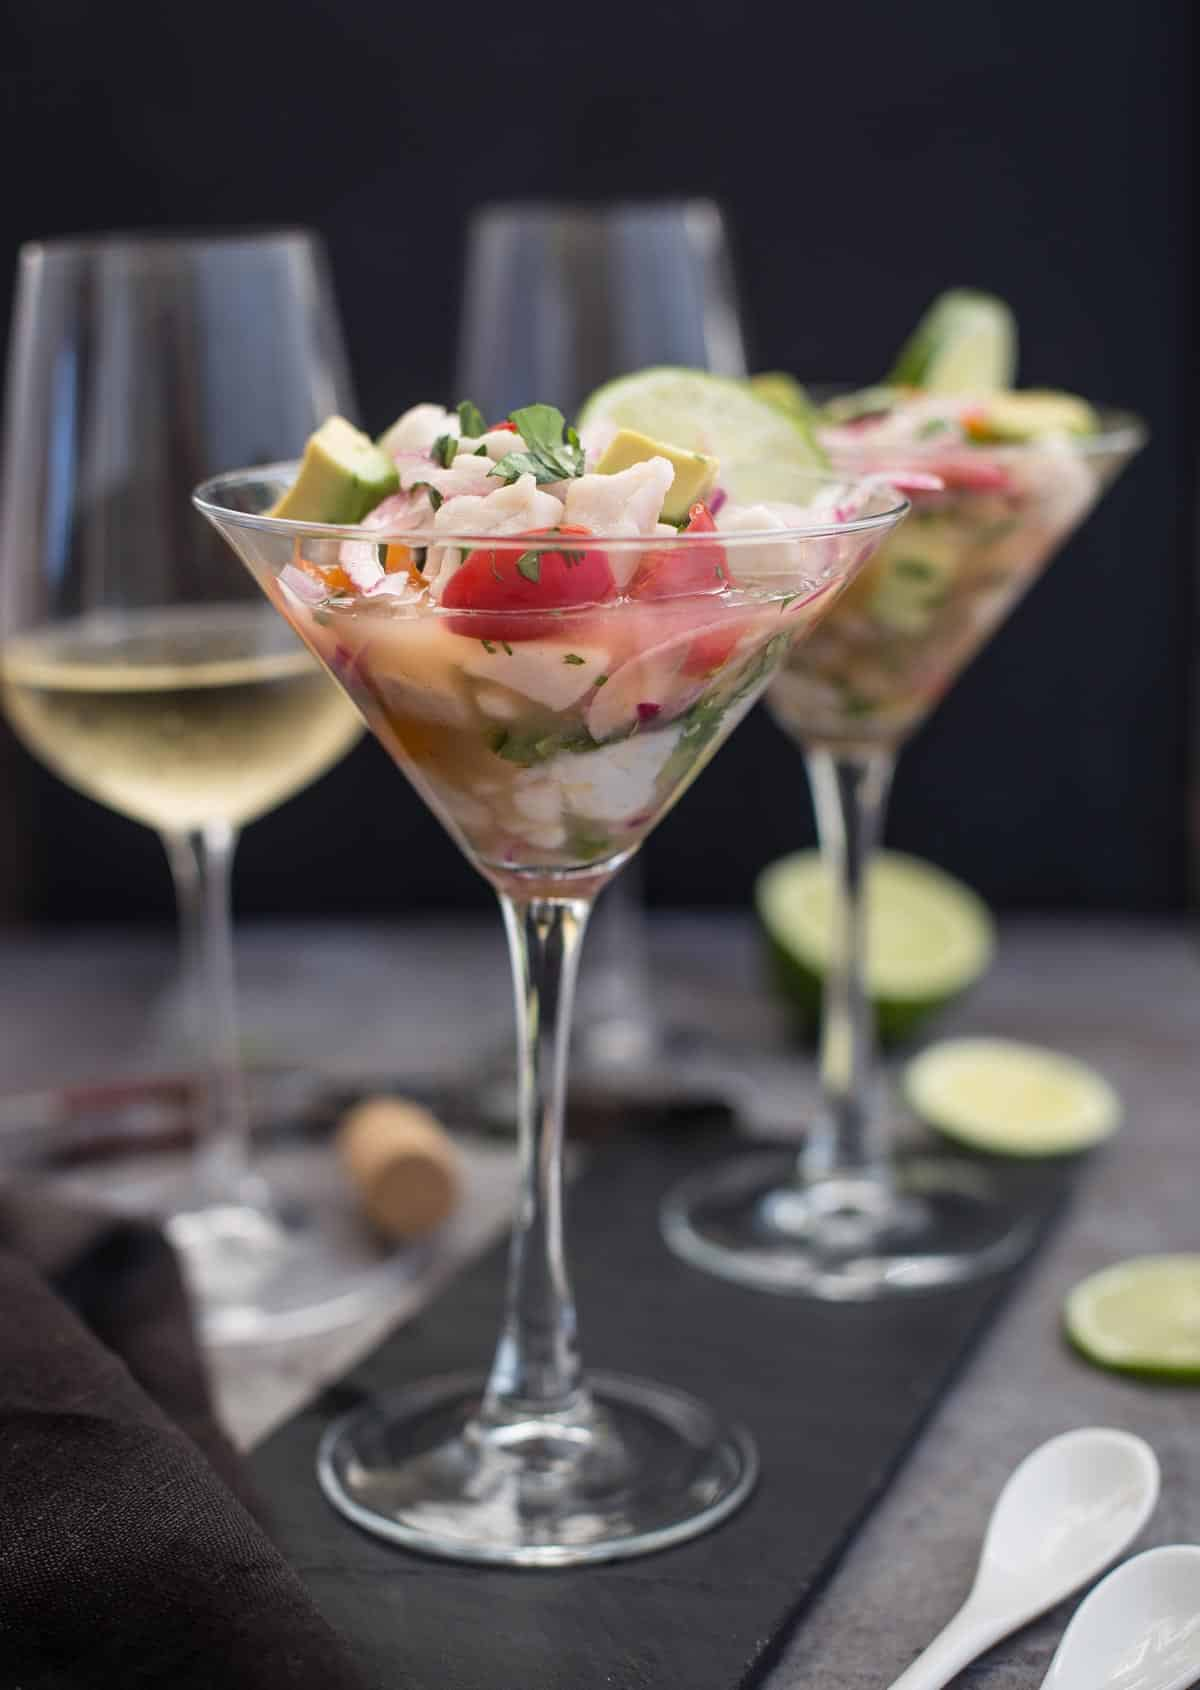 A glass with ceviche and a glass of Sauvignon Blanc wine